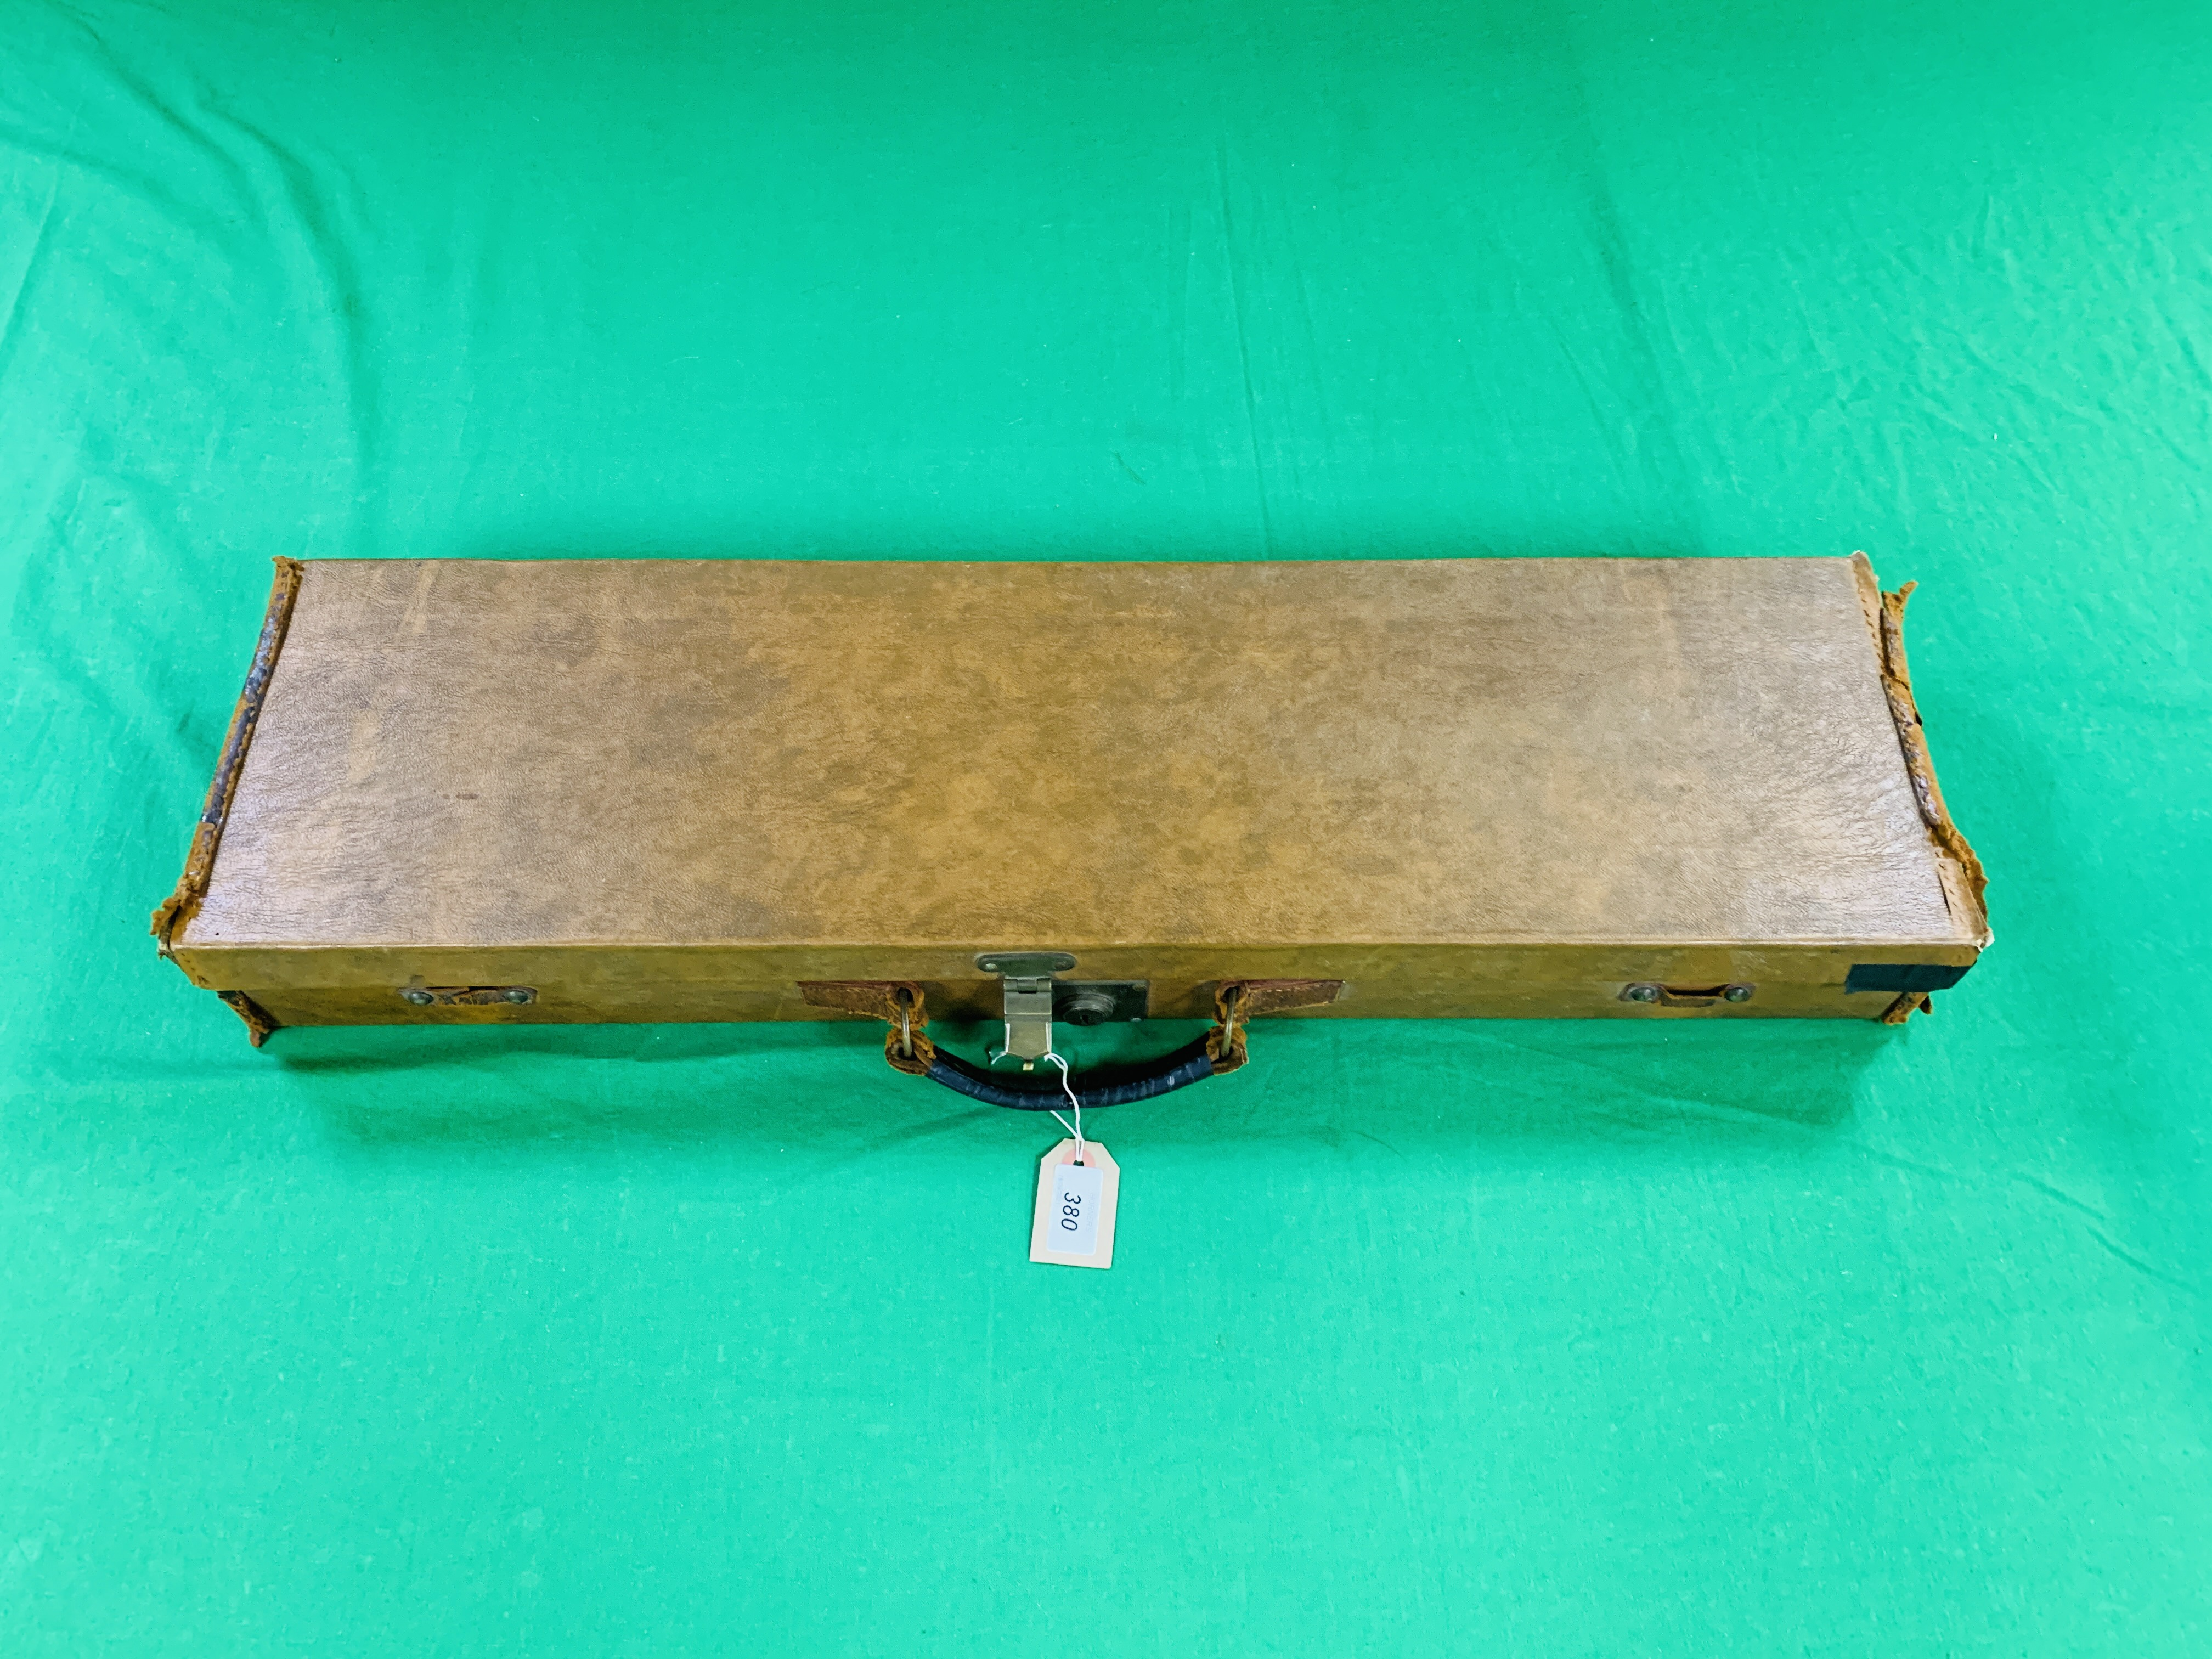 """LEATHERETTE 28 / 30"""" CASE WITH GALLYON OF KINGFISHER LABEL INSIDE - Image 9 of 11"""